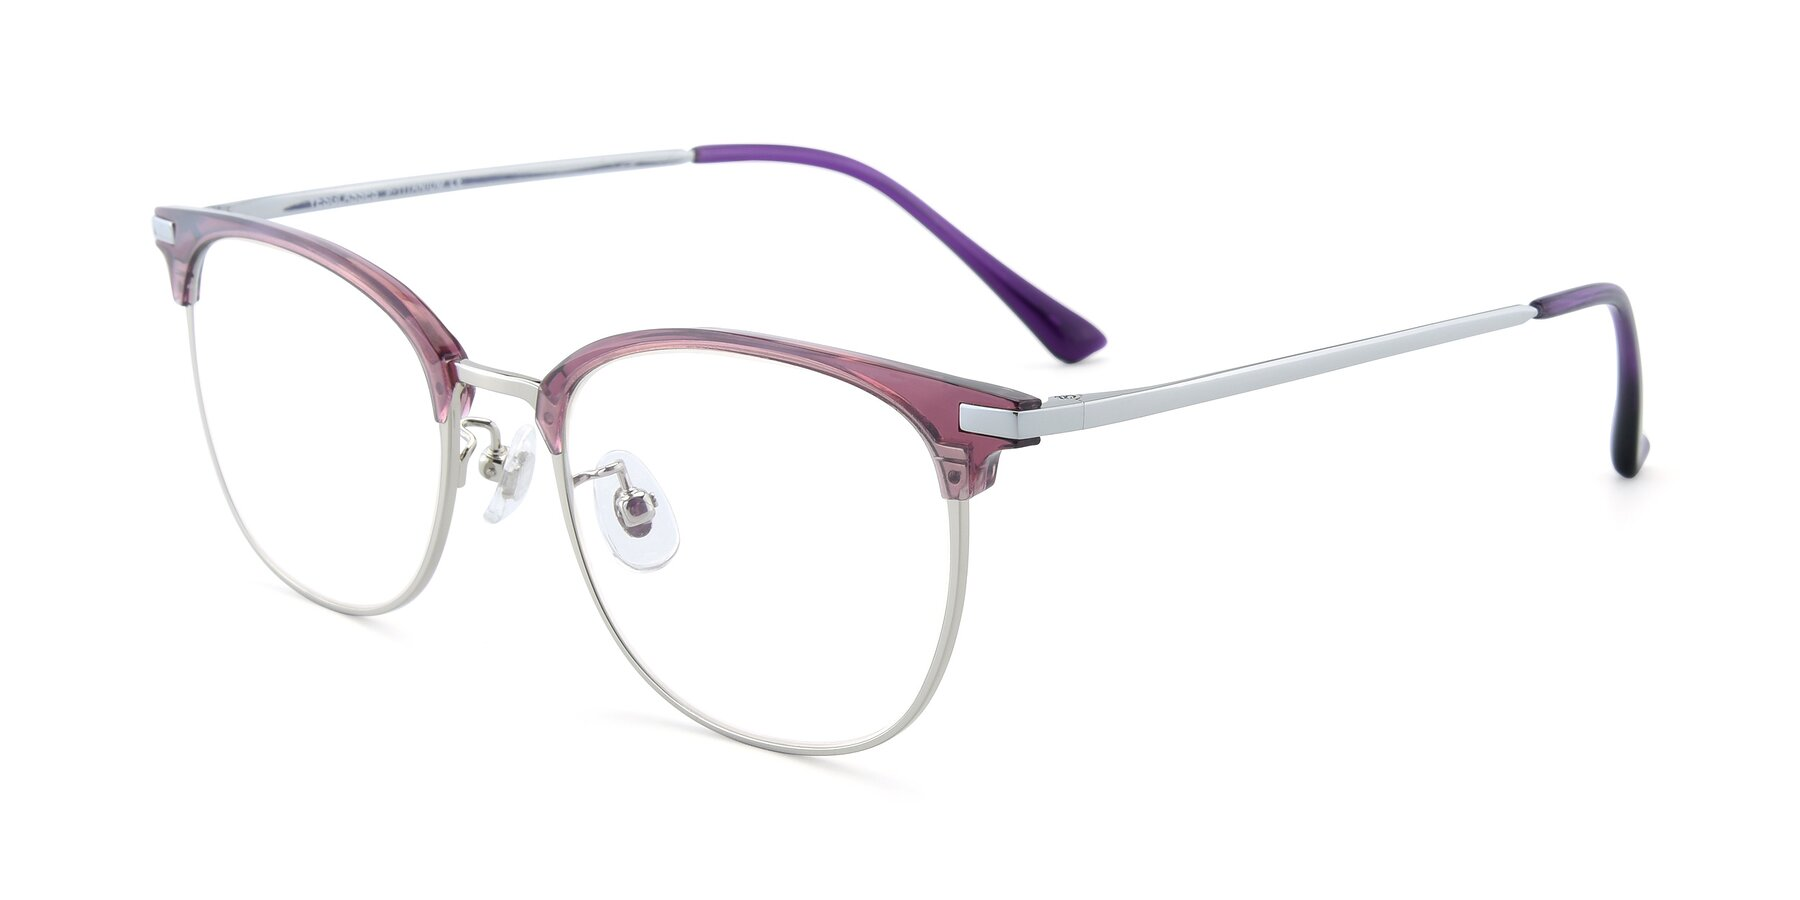 Angle of XC-5002 in Purple-Silver with Clear Blue Light Blocking Lenses